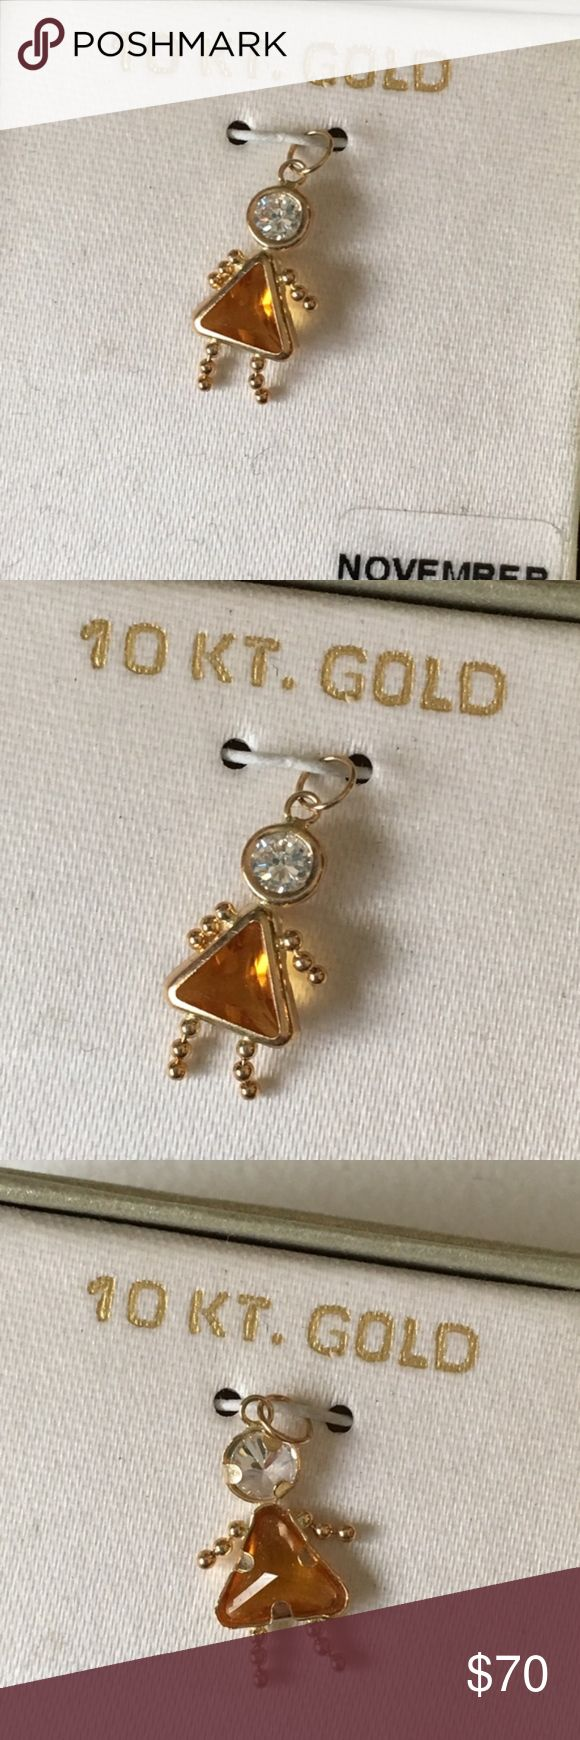 "NEW 10K Gold November Girl Birthstone Pendant Brand new in box. Pendant measures about .75"" long. Pendant to put on your own chain necklace or bracelet. Pendant only, does not come with a chain. Jewelry"